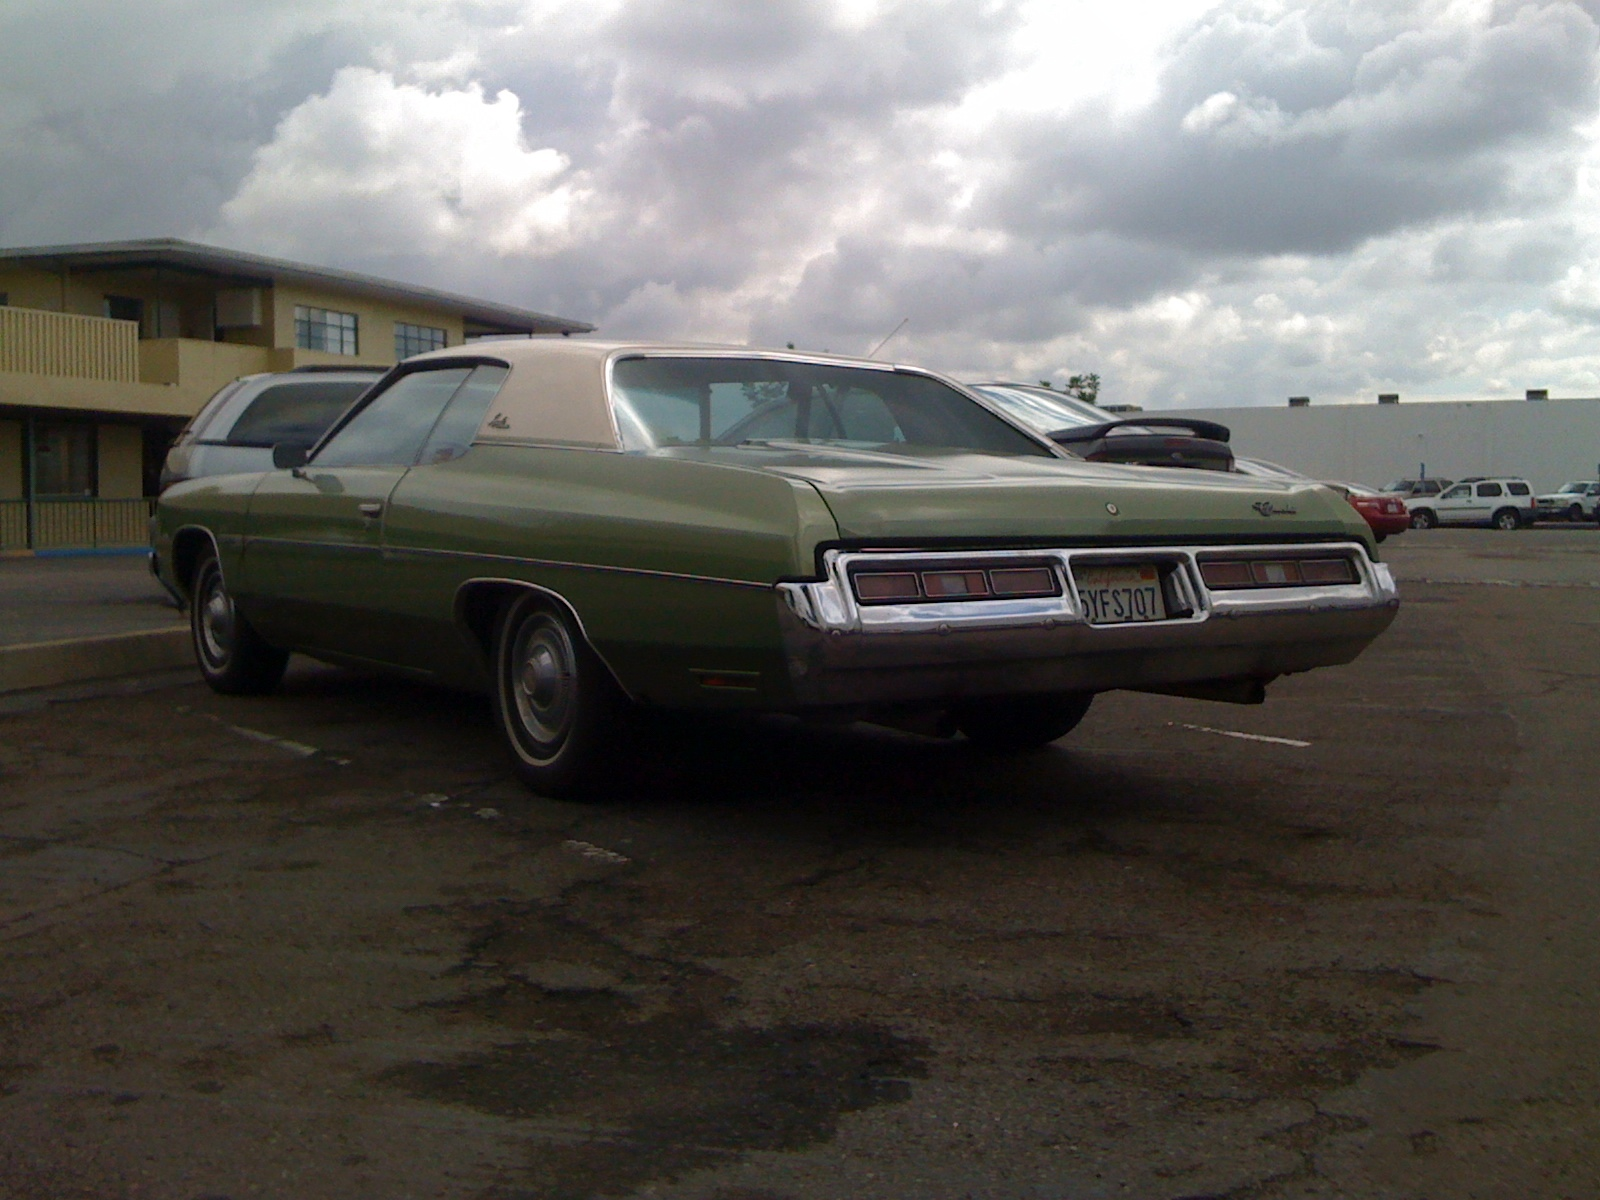 THE STREET PEEP: 1972 Chevrolet Impala Custom Coupe